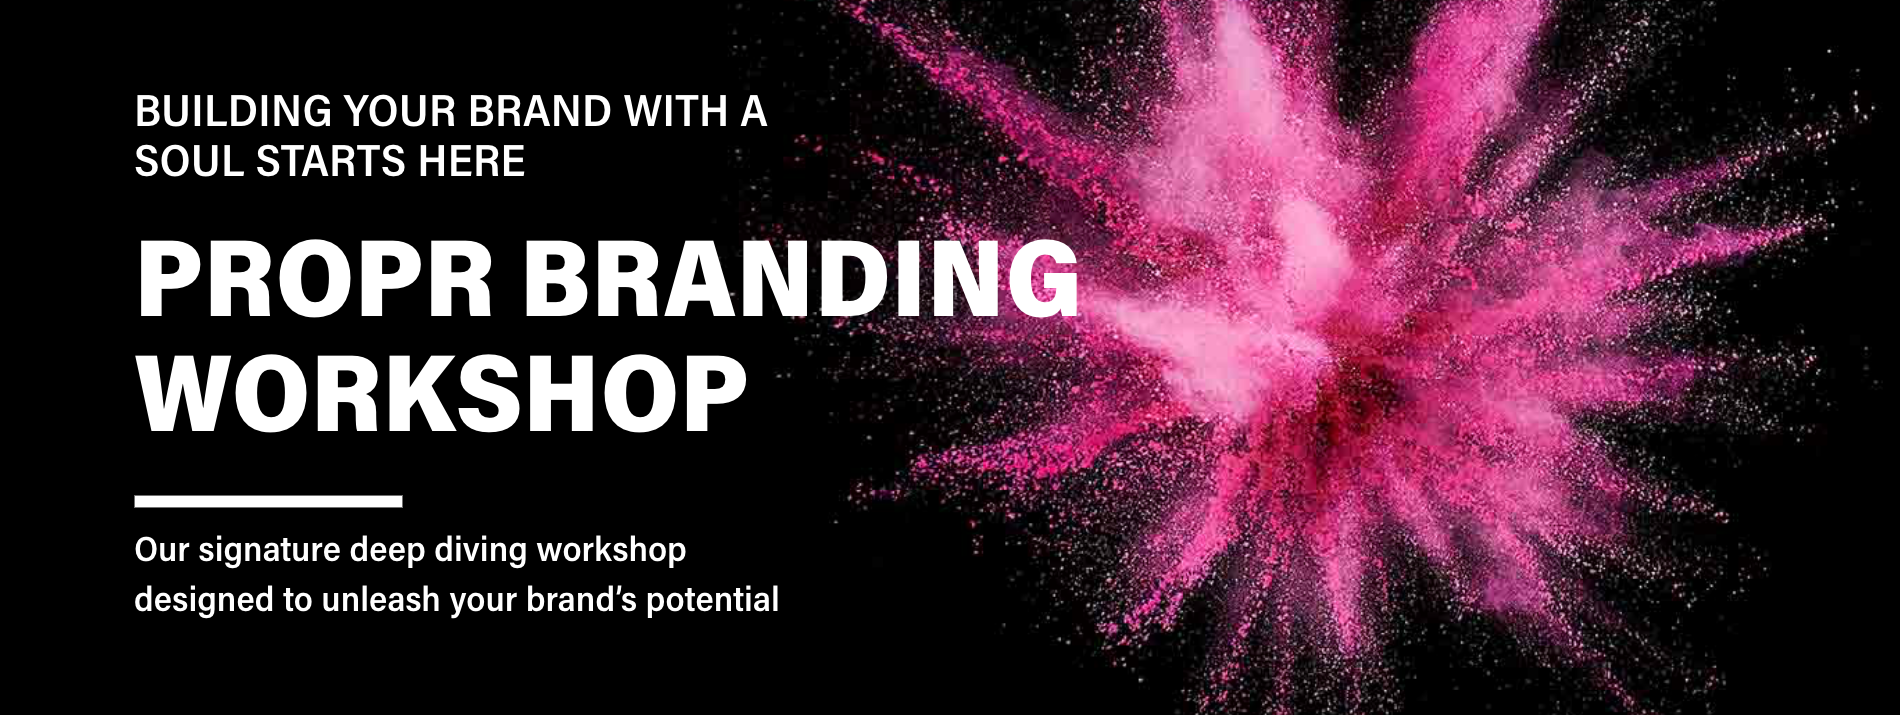 Propr Branding Workshop Banner@2x